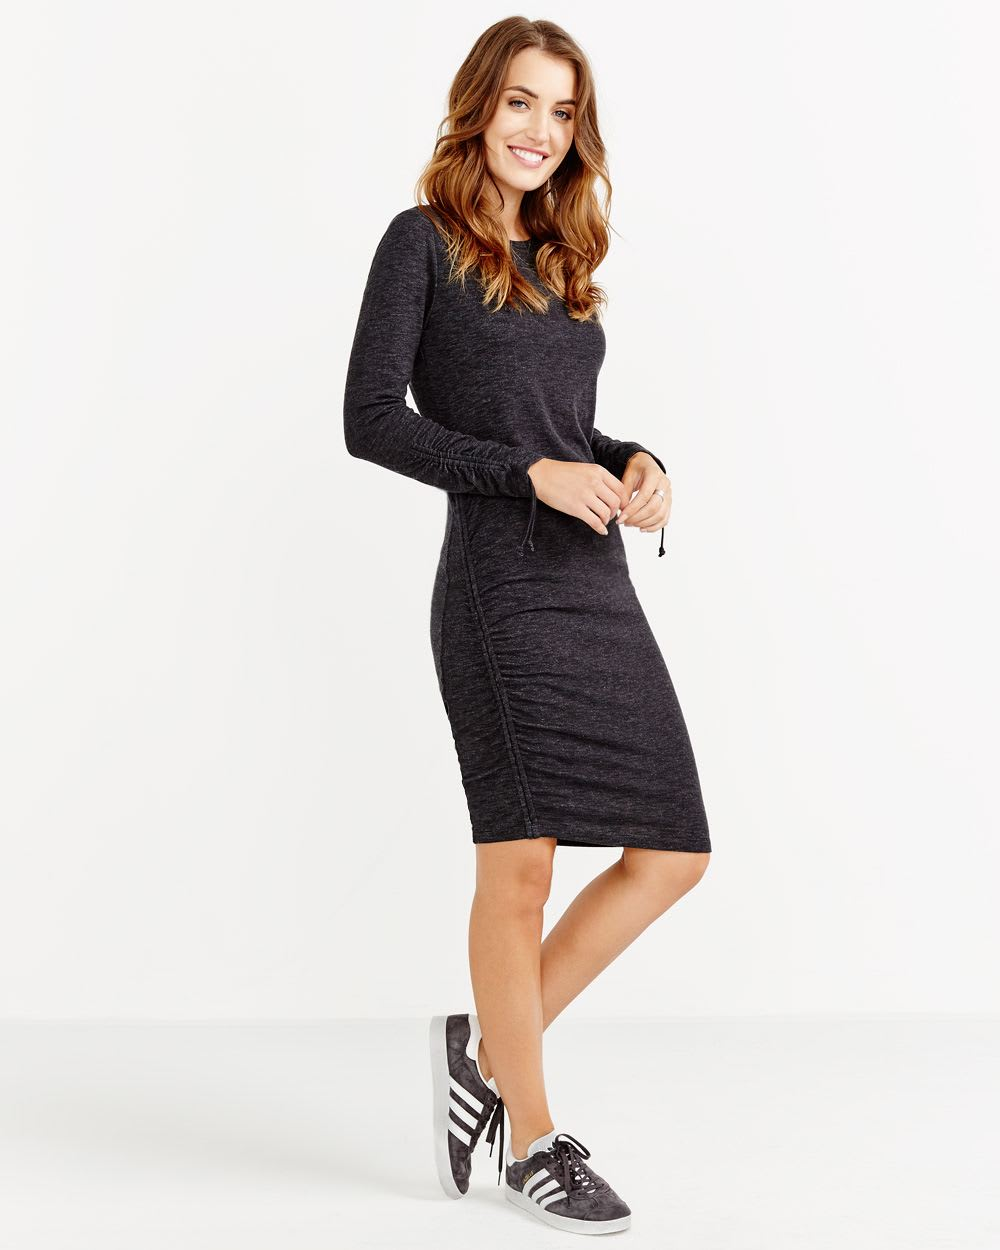 Ruched Space Dye Dress